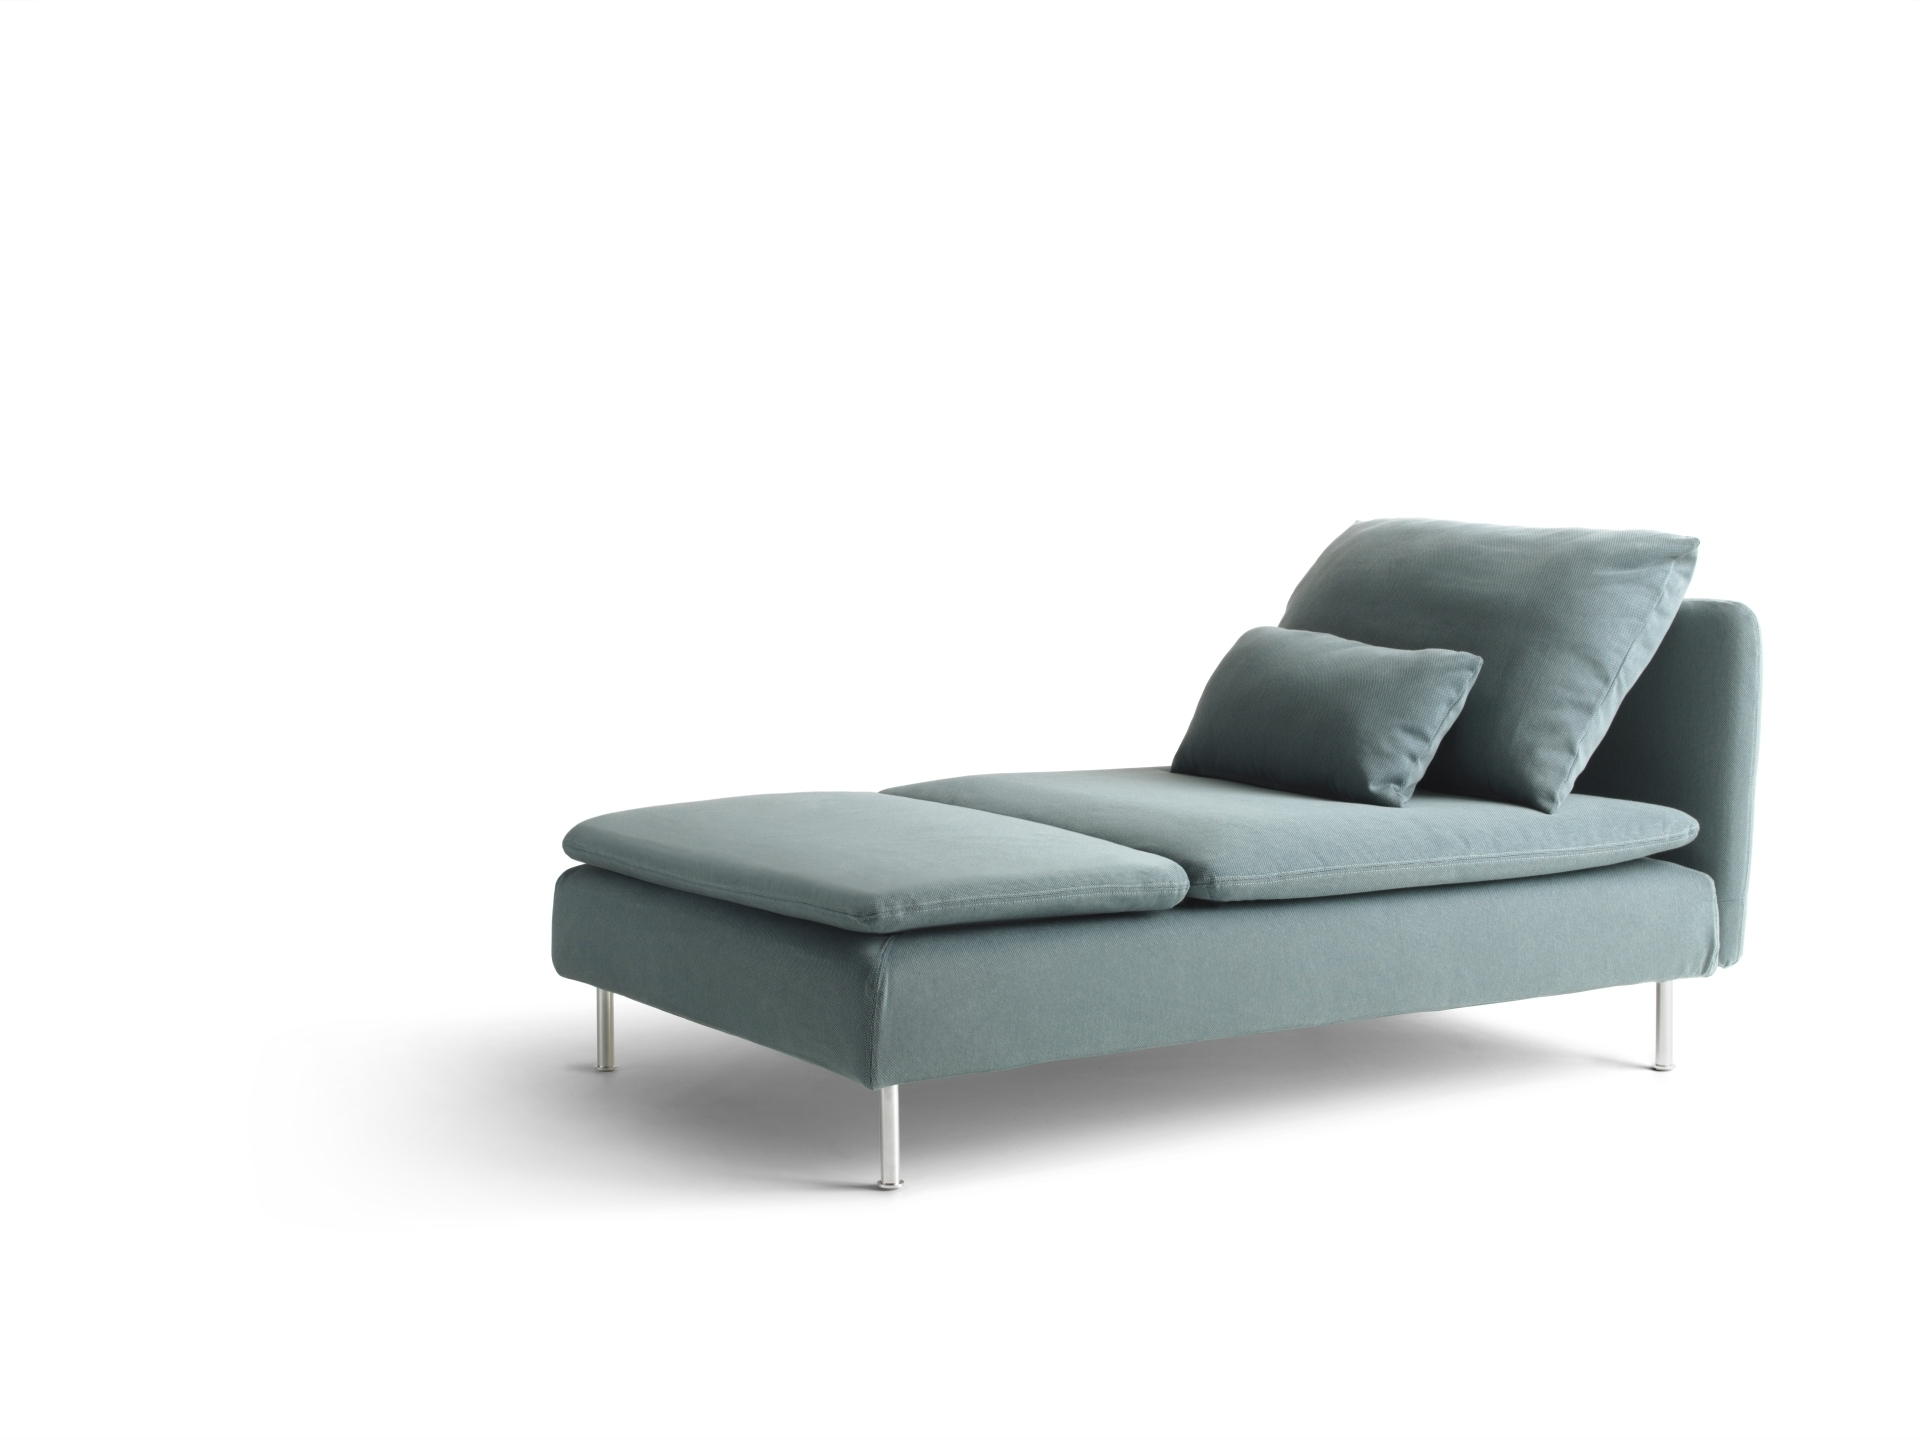 Chaise Lounges, Daybed With Ikea Chaise Lounge Chairs (View 2 of 15)